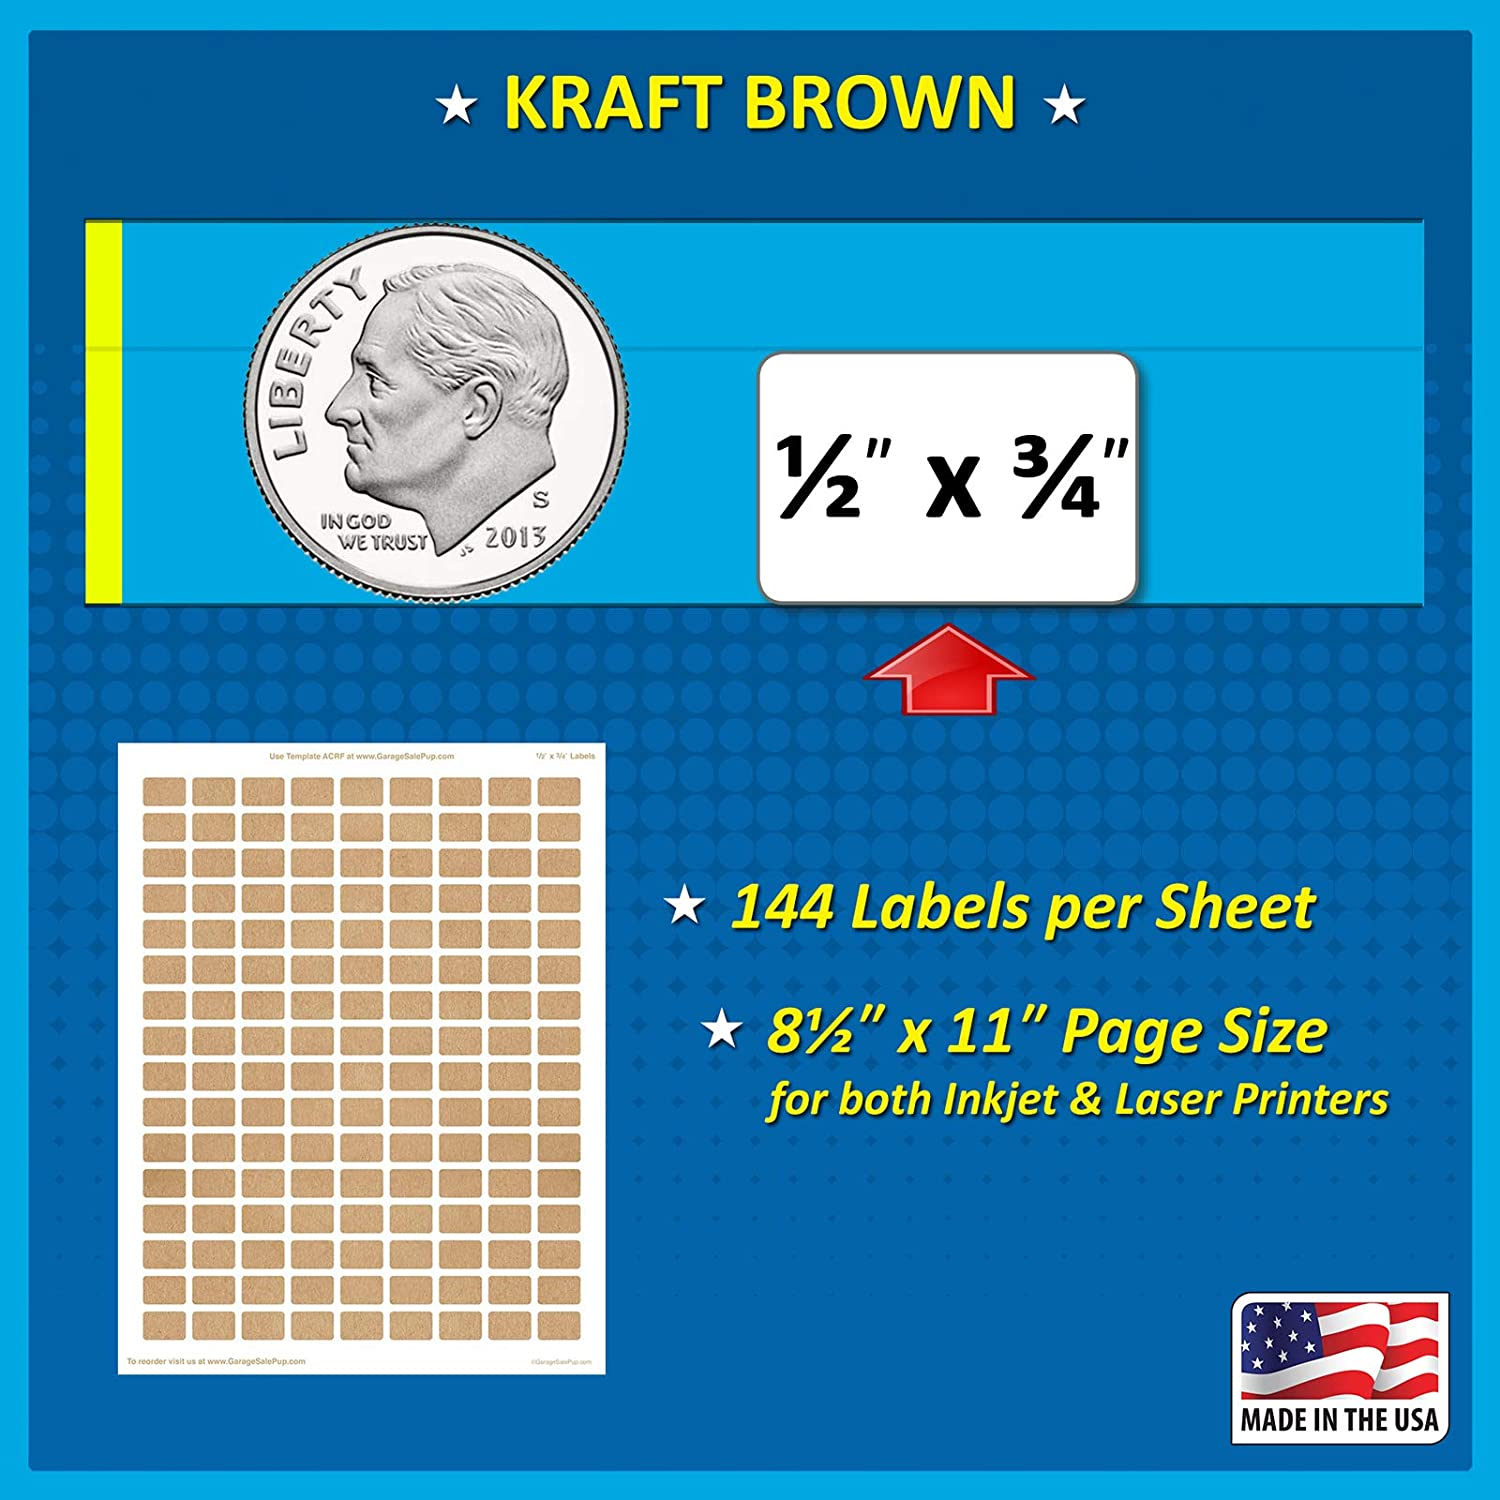 Garage Sale Pup Pack of 2016 1//2 x 3//4 Rectangle Color Coding Dot Labels Kraft Brown 8 1//2 x 11 Inch Sheet Fits All Laser//Inkjet Printers 144 Labels per Sheet 0.5 x 0.75 Inches